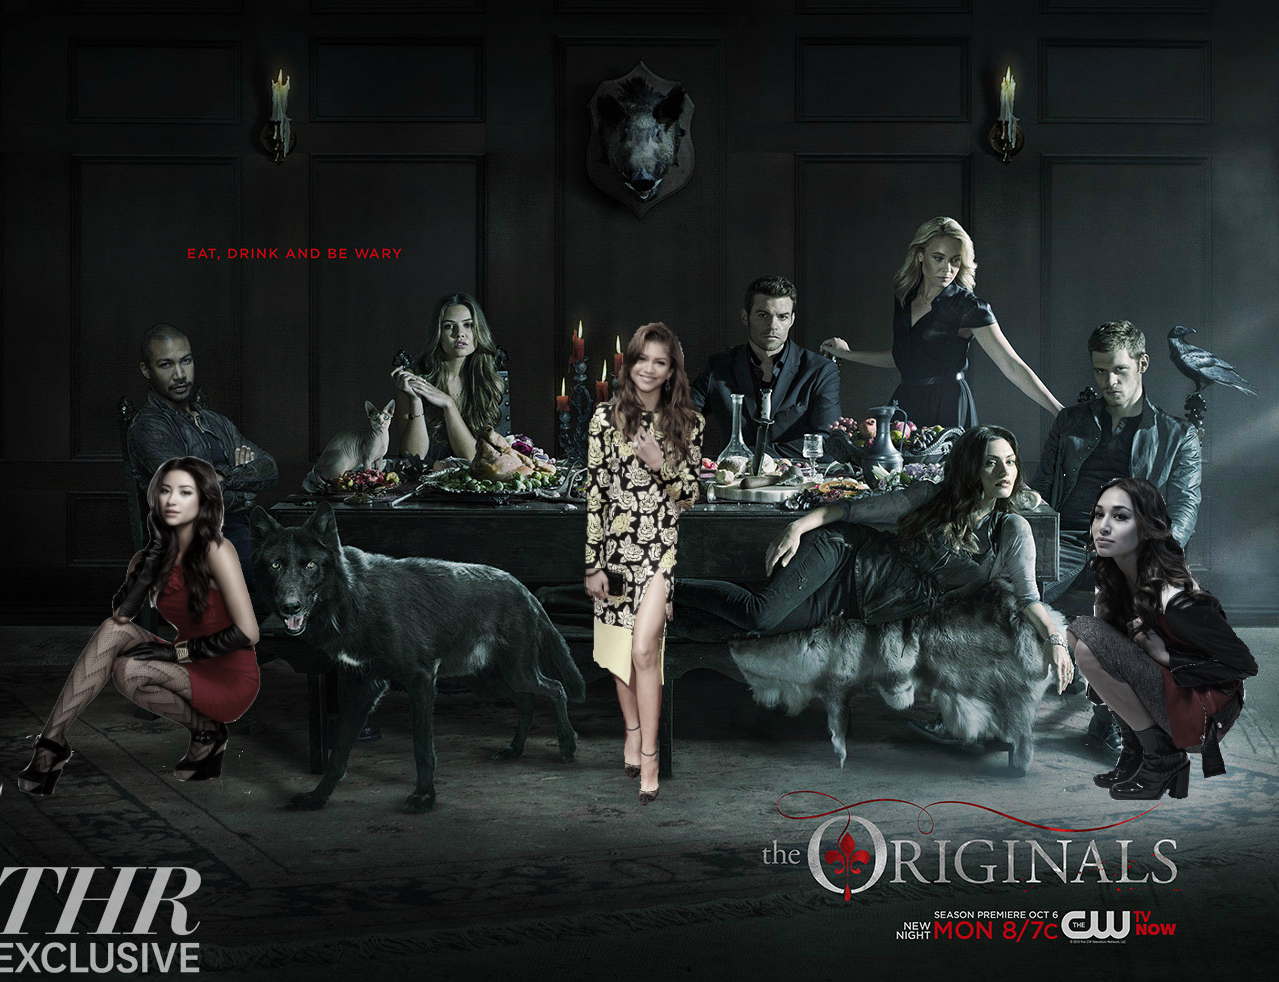 The Originals Fanfiction Wiki - Fandom